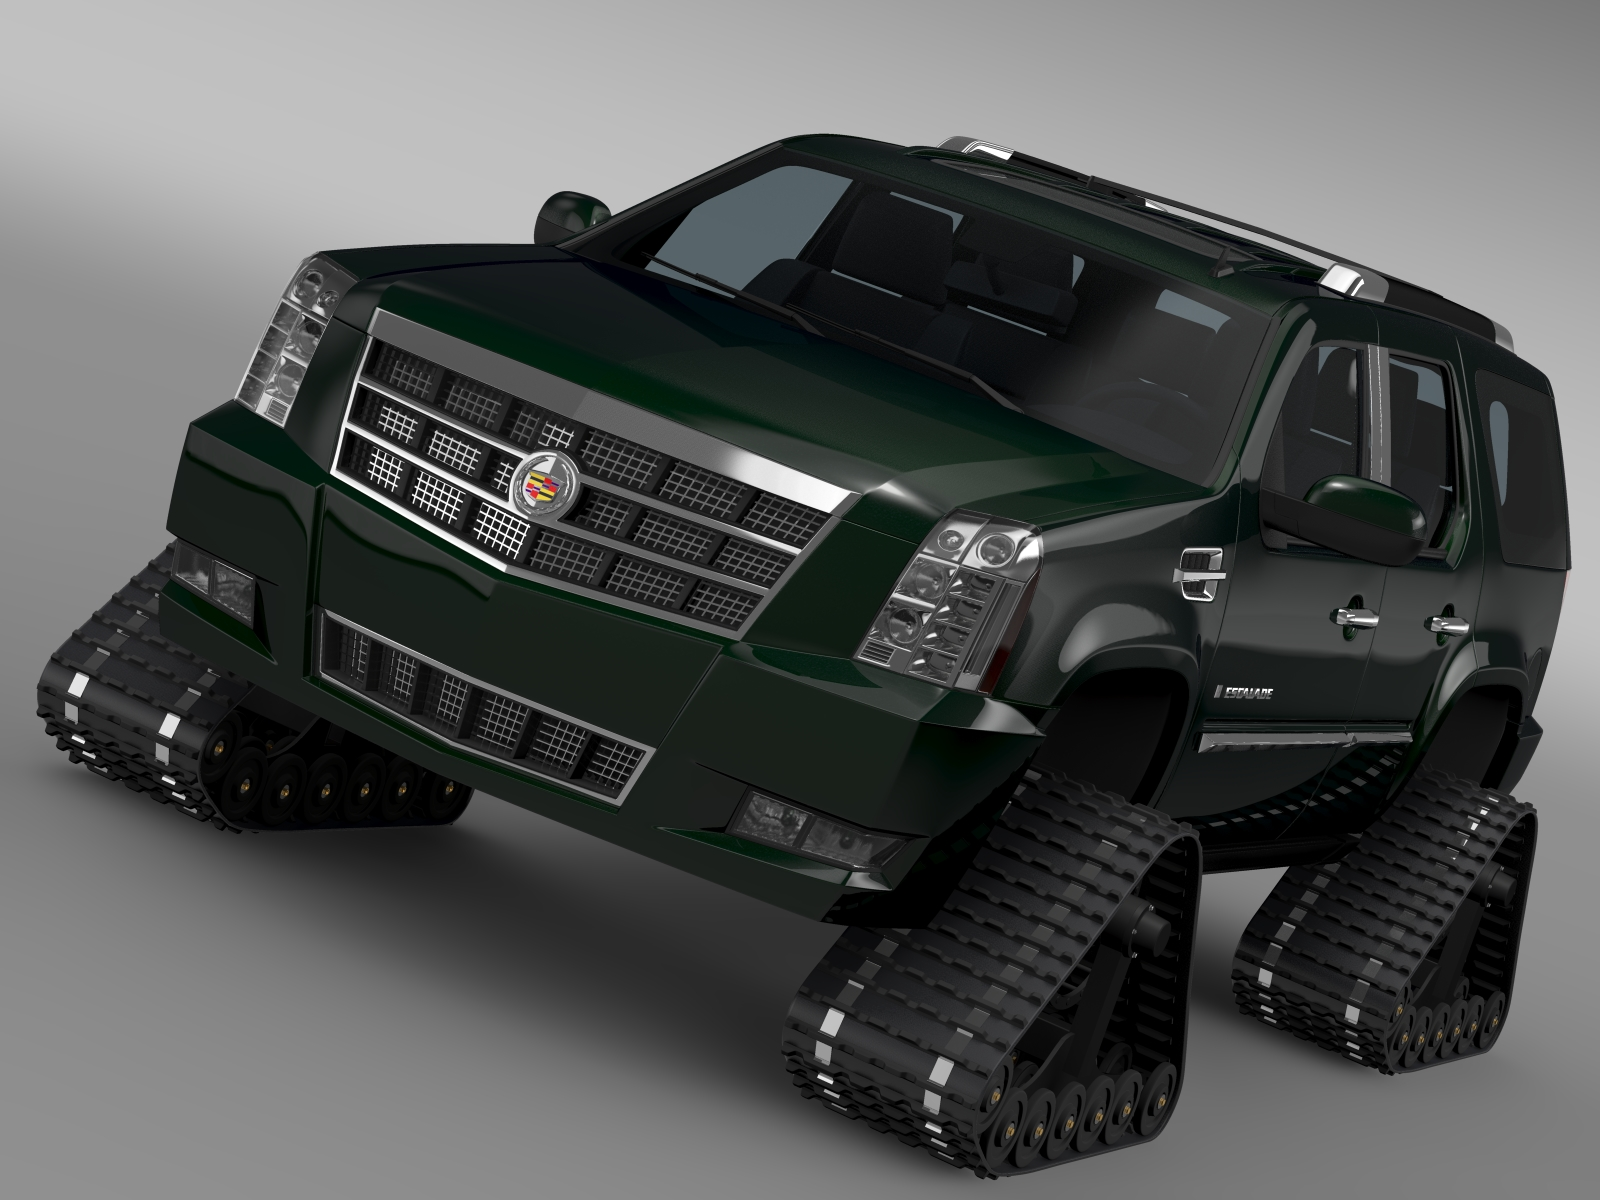 cadillac escalade crawler 3d model 3ds max fbx c4d